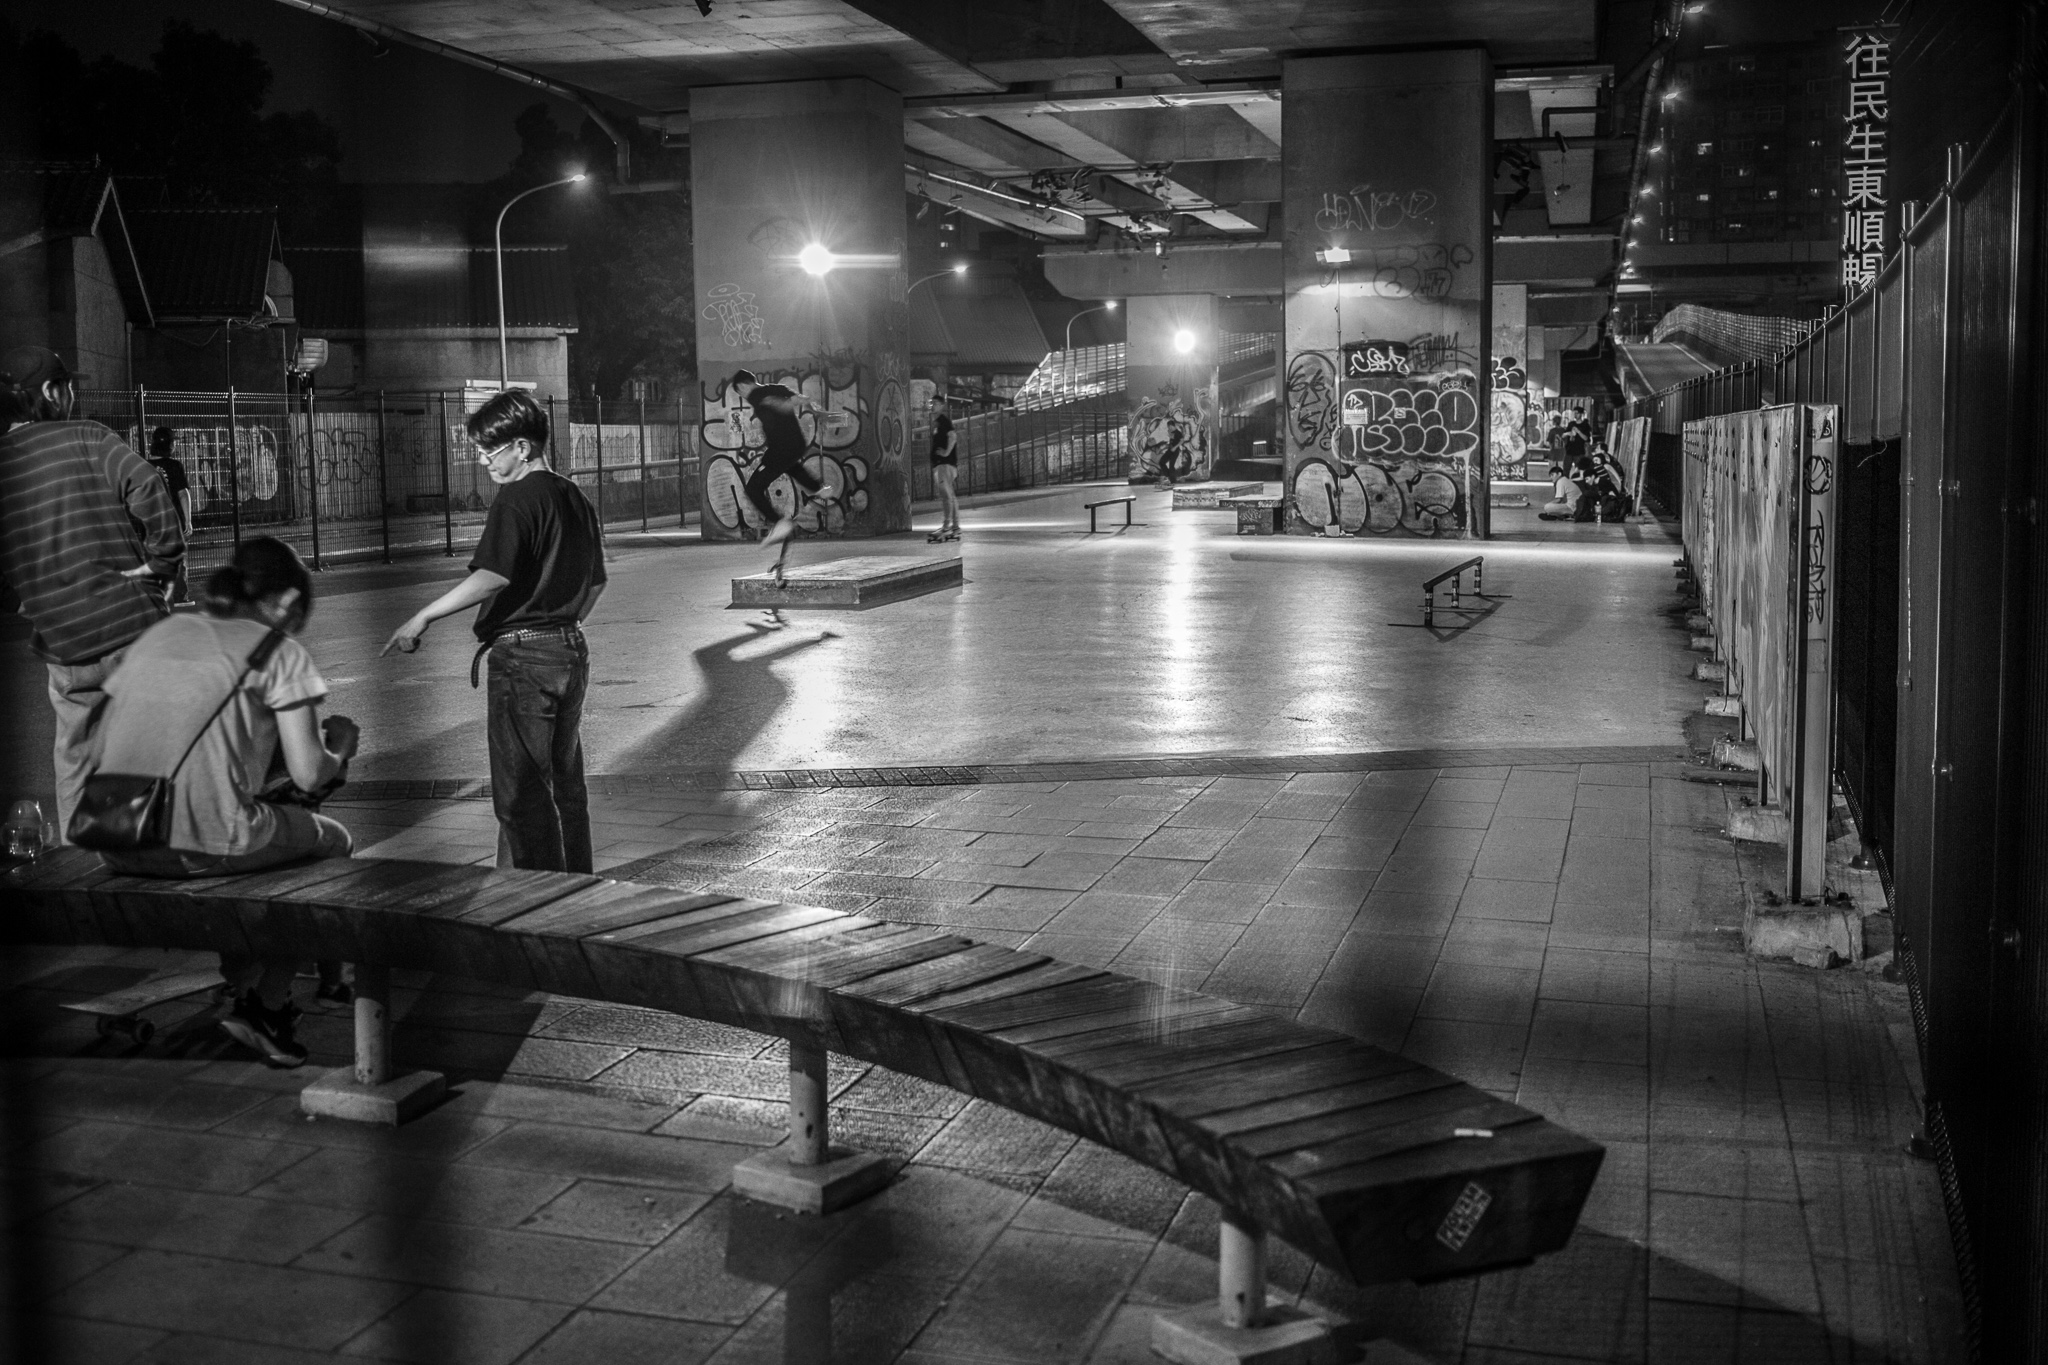 Skateboarders at midnight.